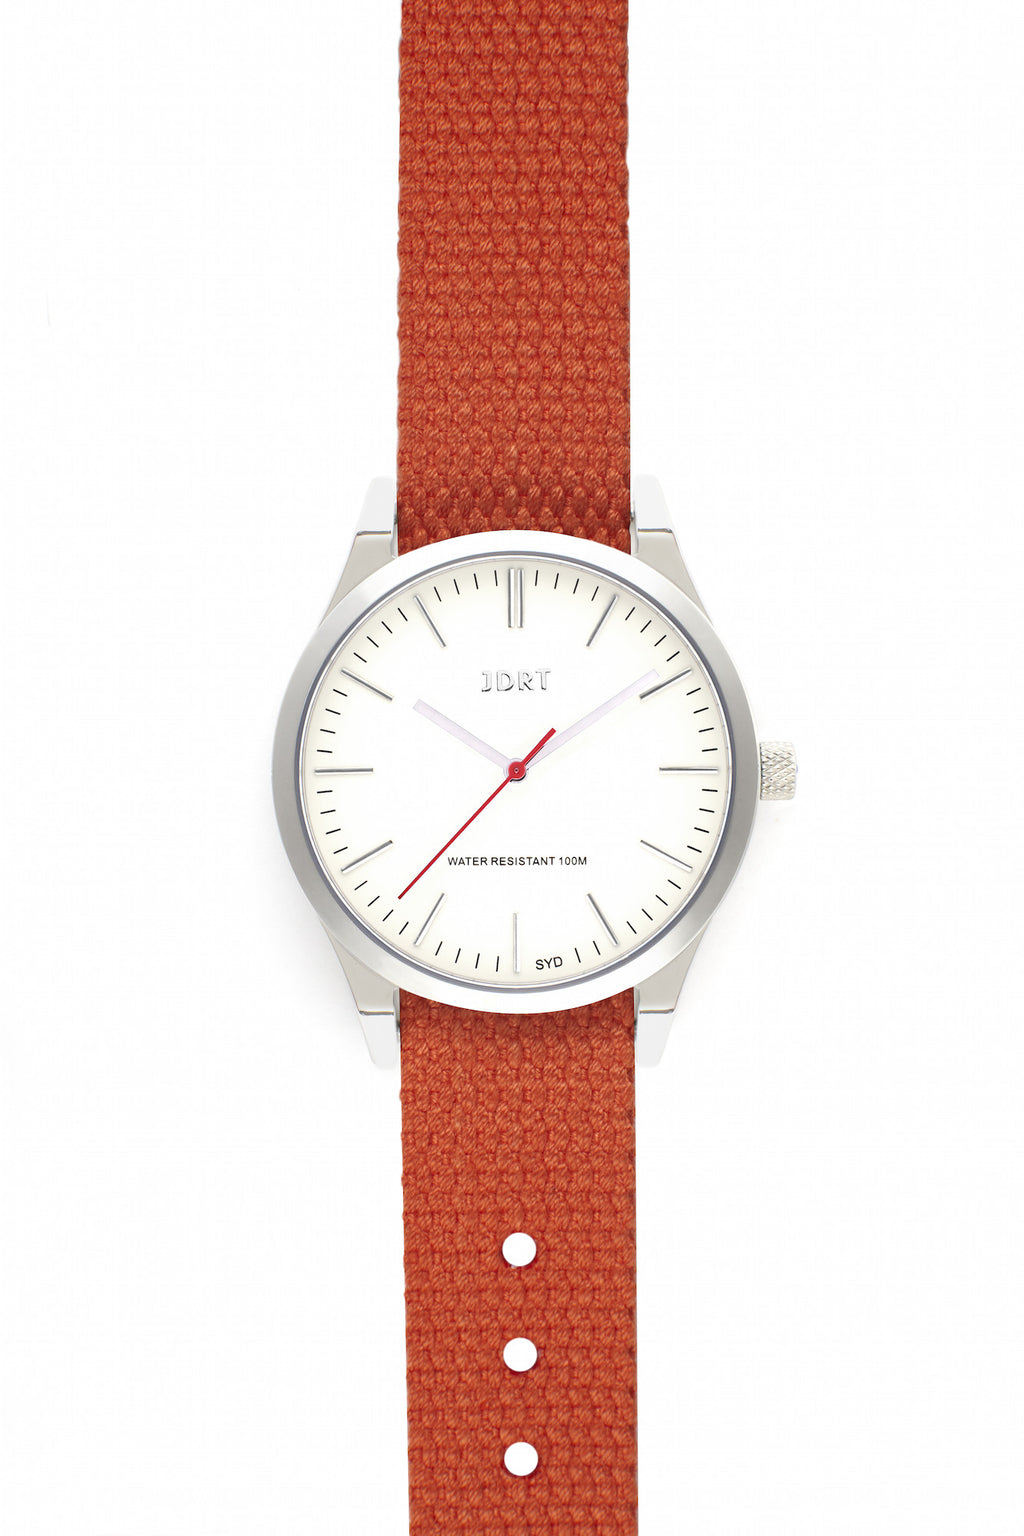 Antique White Face with Mandarin Canvas Watch Band